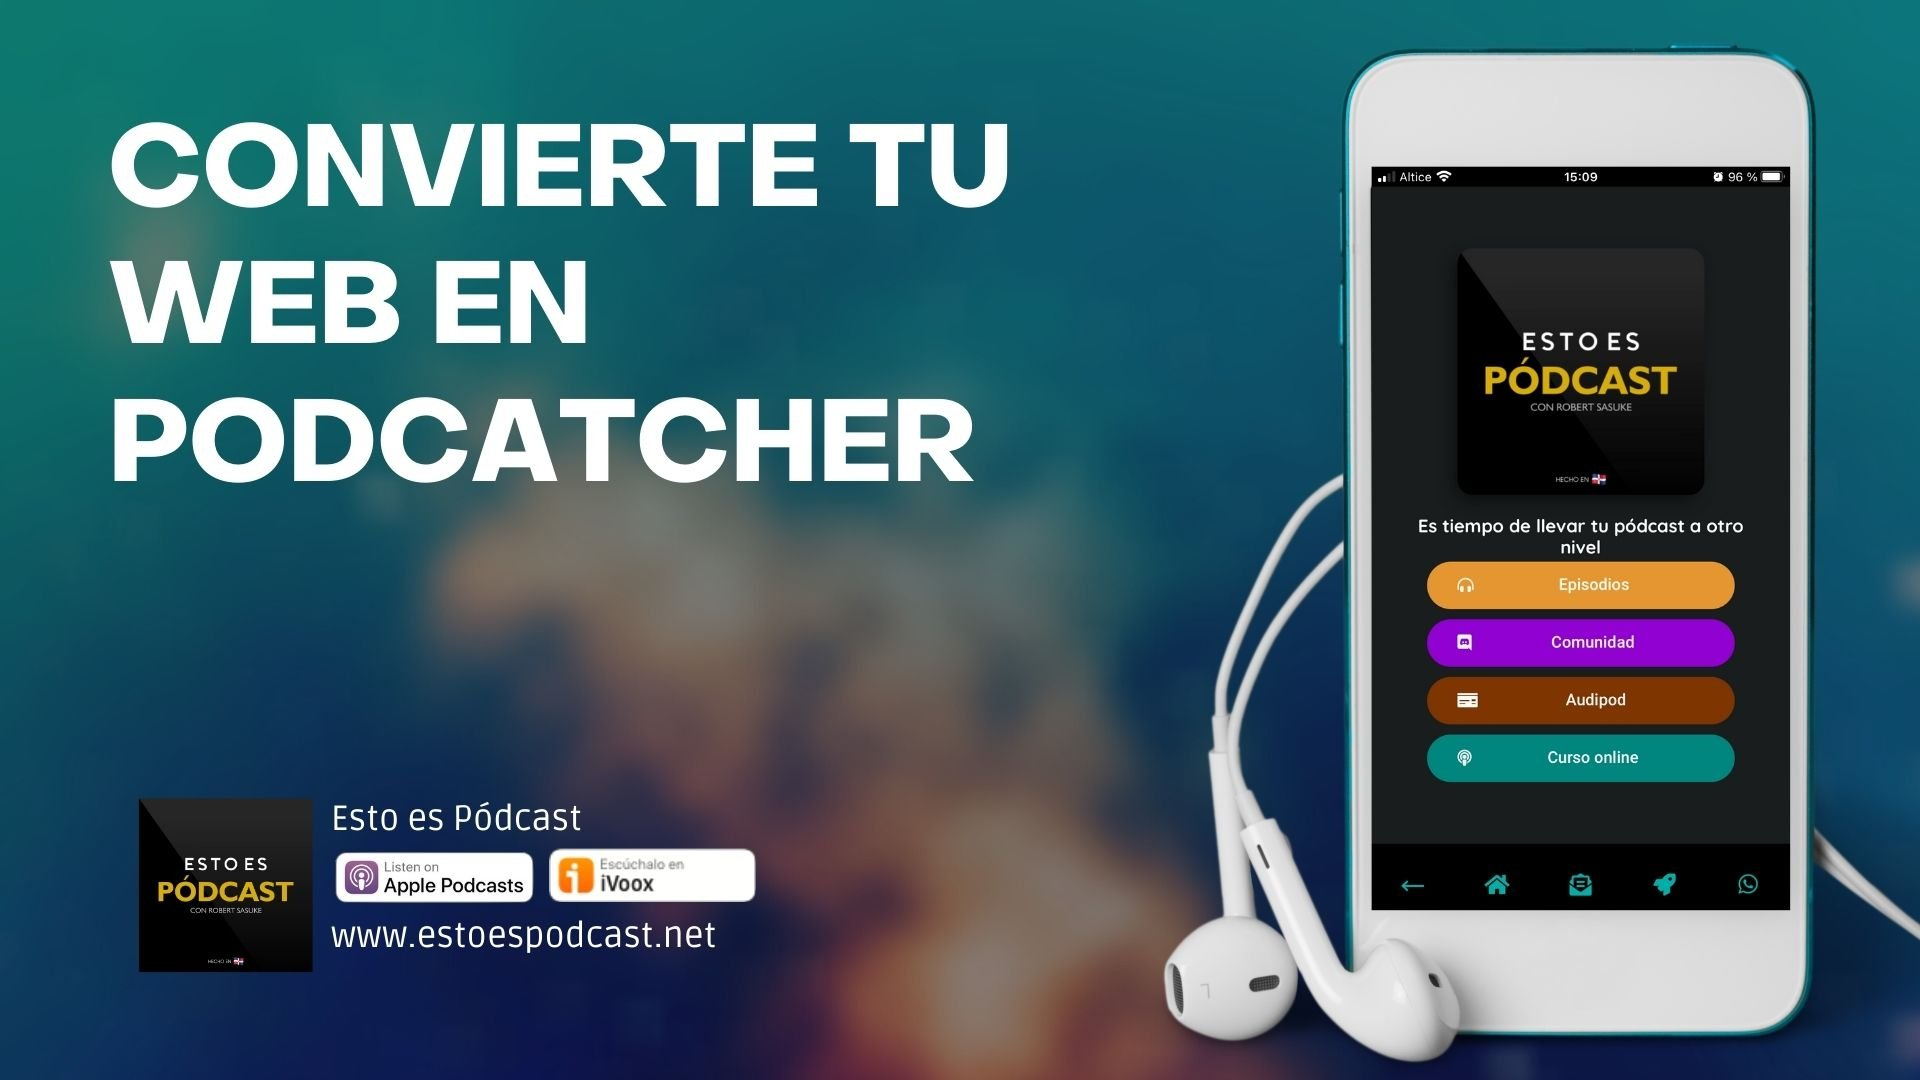 Convierte tu web en un podcatcher con Wordpress